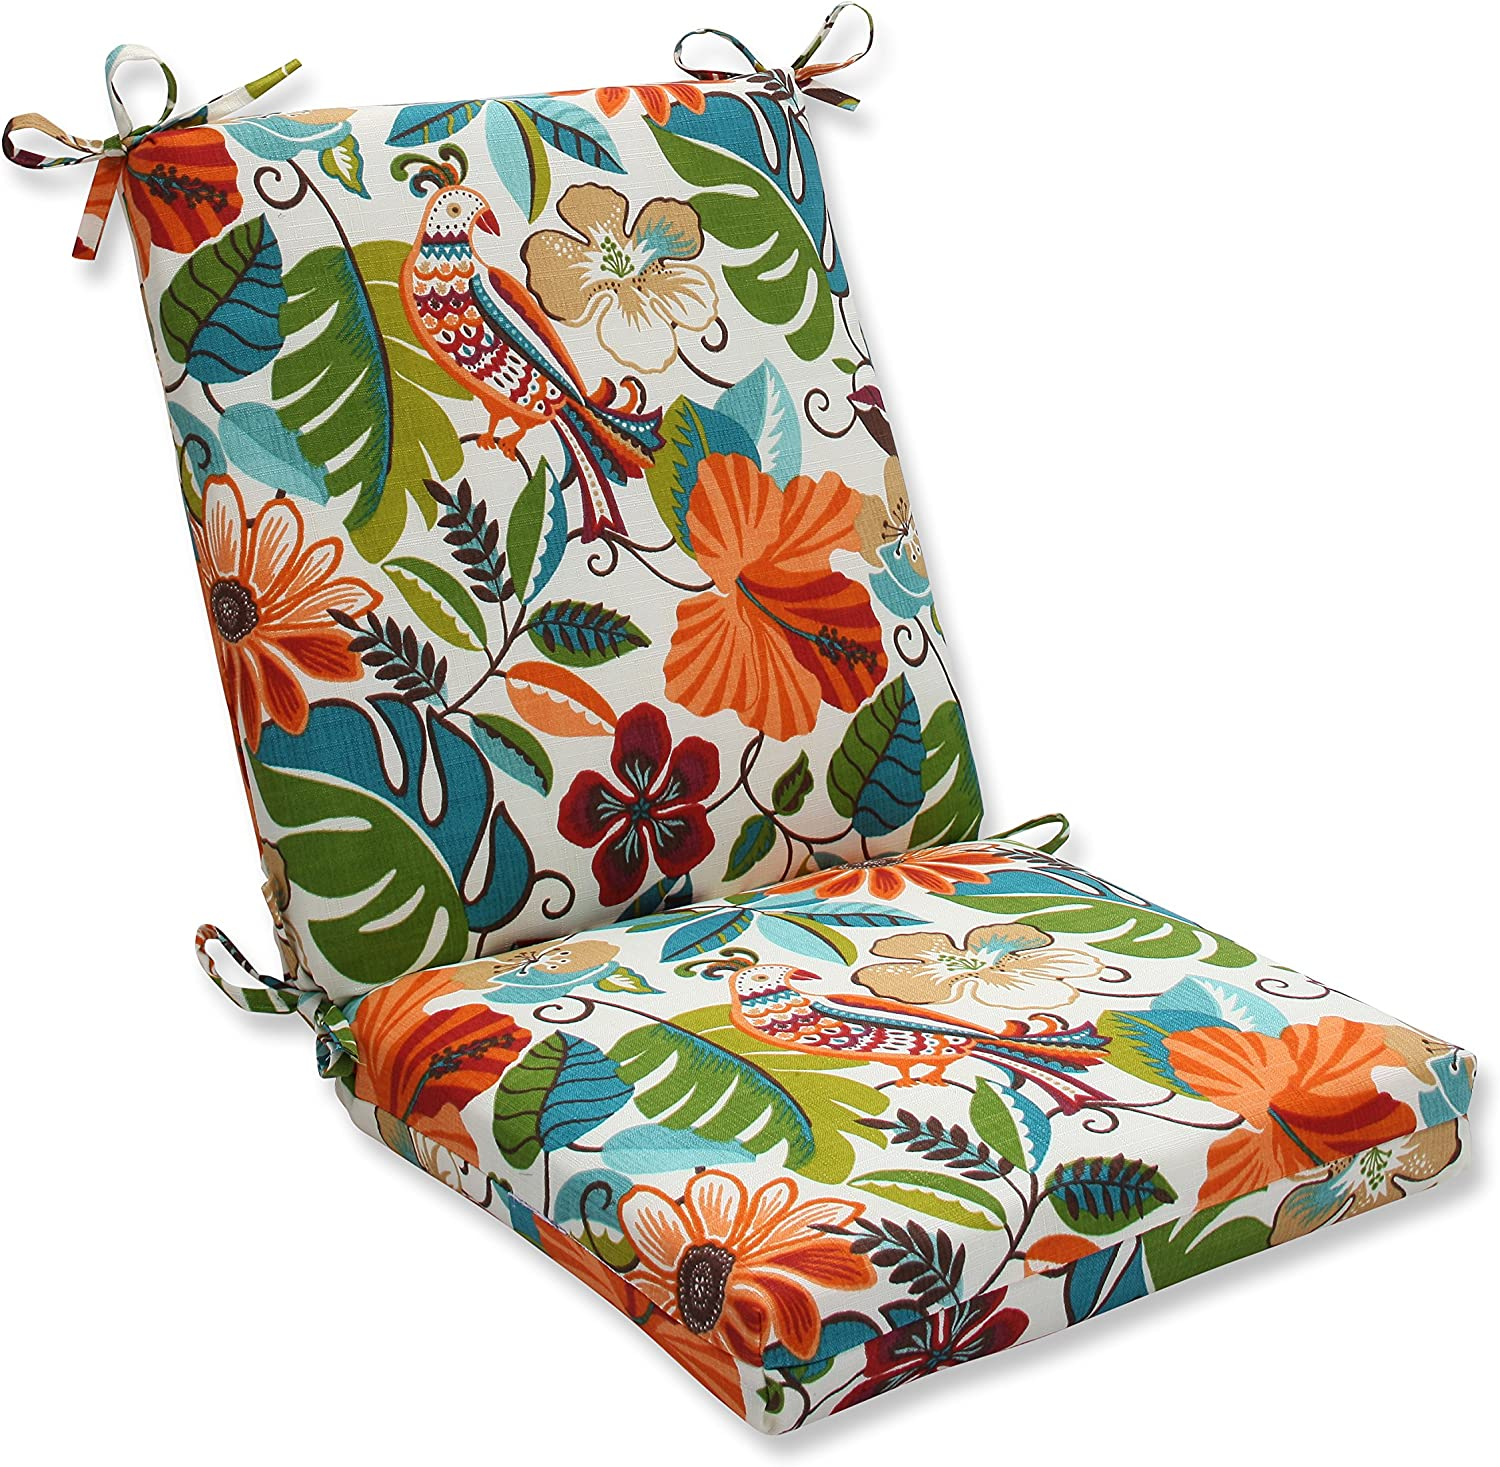 Max 56% OFF Pillow Perfect Outdoor Indoor Boston Mall Lensing Chair Square Jungle Corner